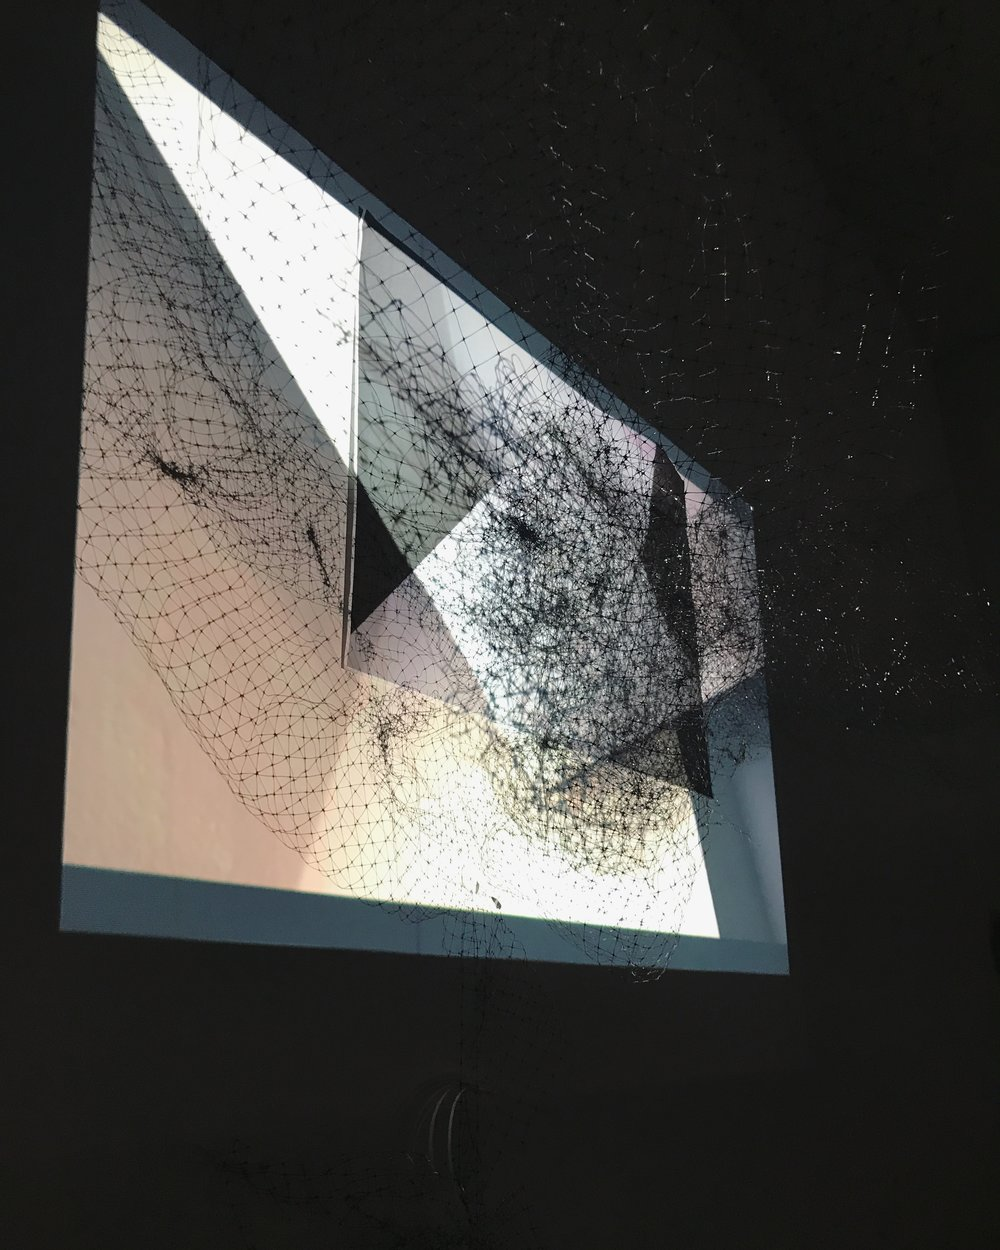 Untitled. Installation View. B&W Photographic Print, Projection, Bird Netting (2017)